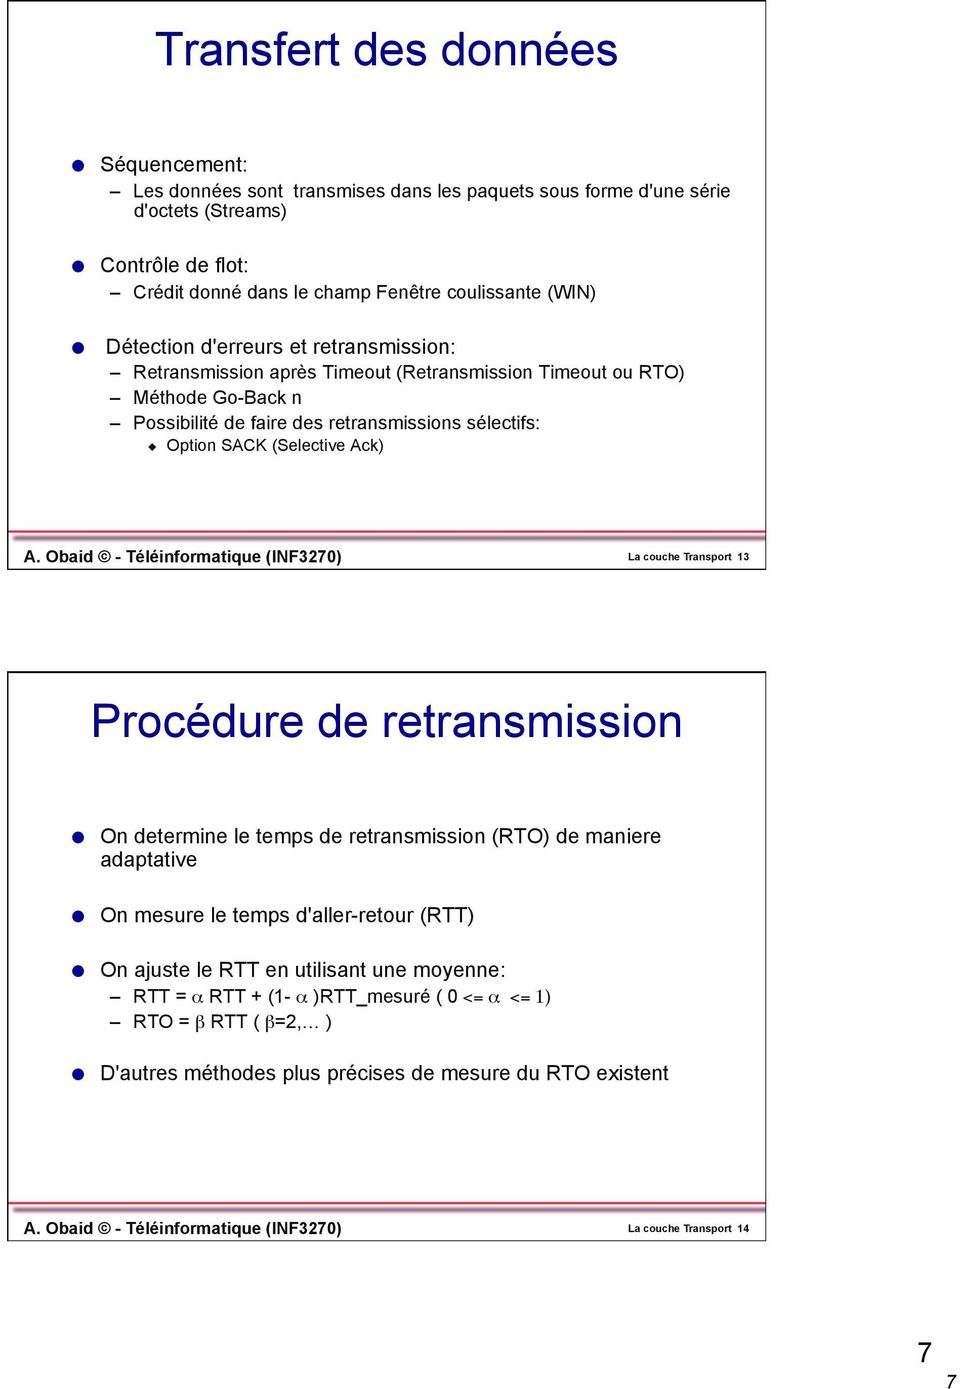 Obaid - Téléinformatique (INF3270) La couche Transport 13 Procédure de retransmission On determine le temps de retransmission (RTO) de maniere adaptative On mesure le temps d'aller-retour (RTT) On